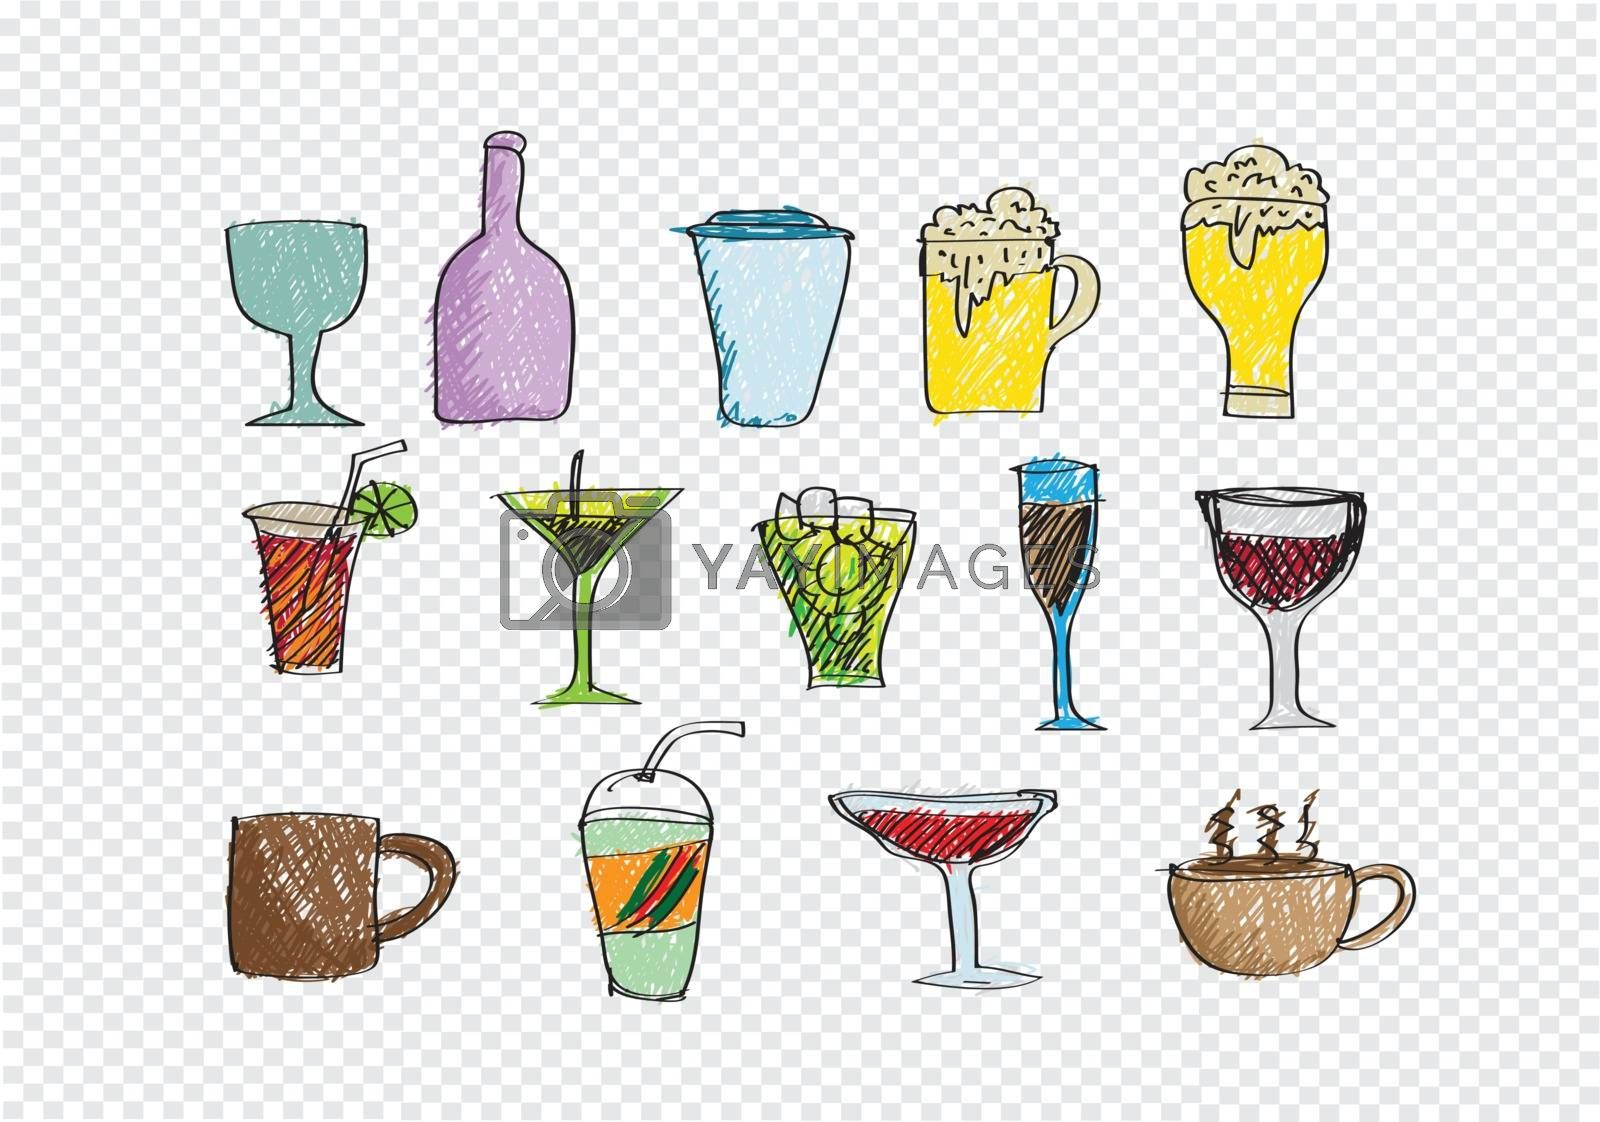 Drink beverage icons set by kiddaikiddee